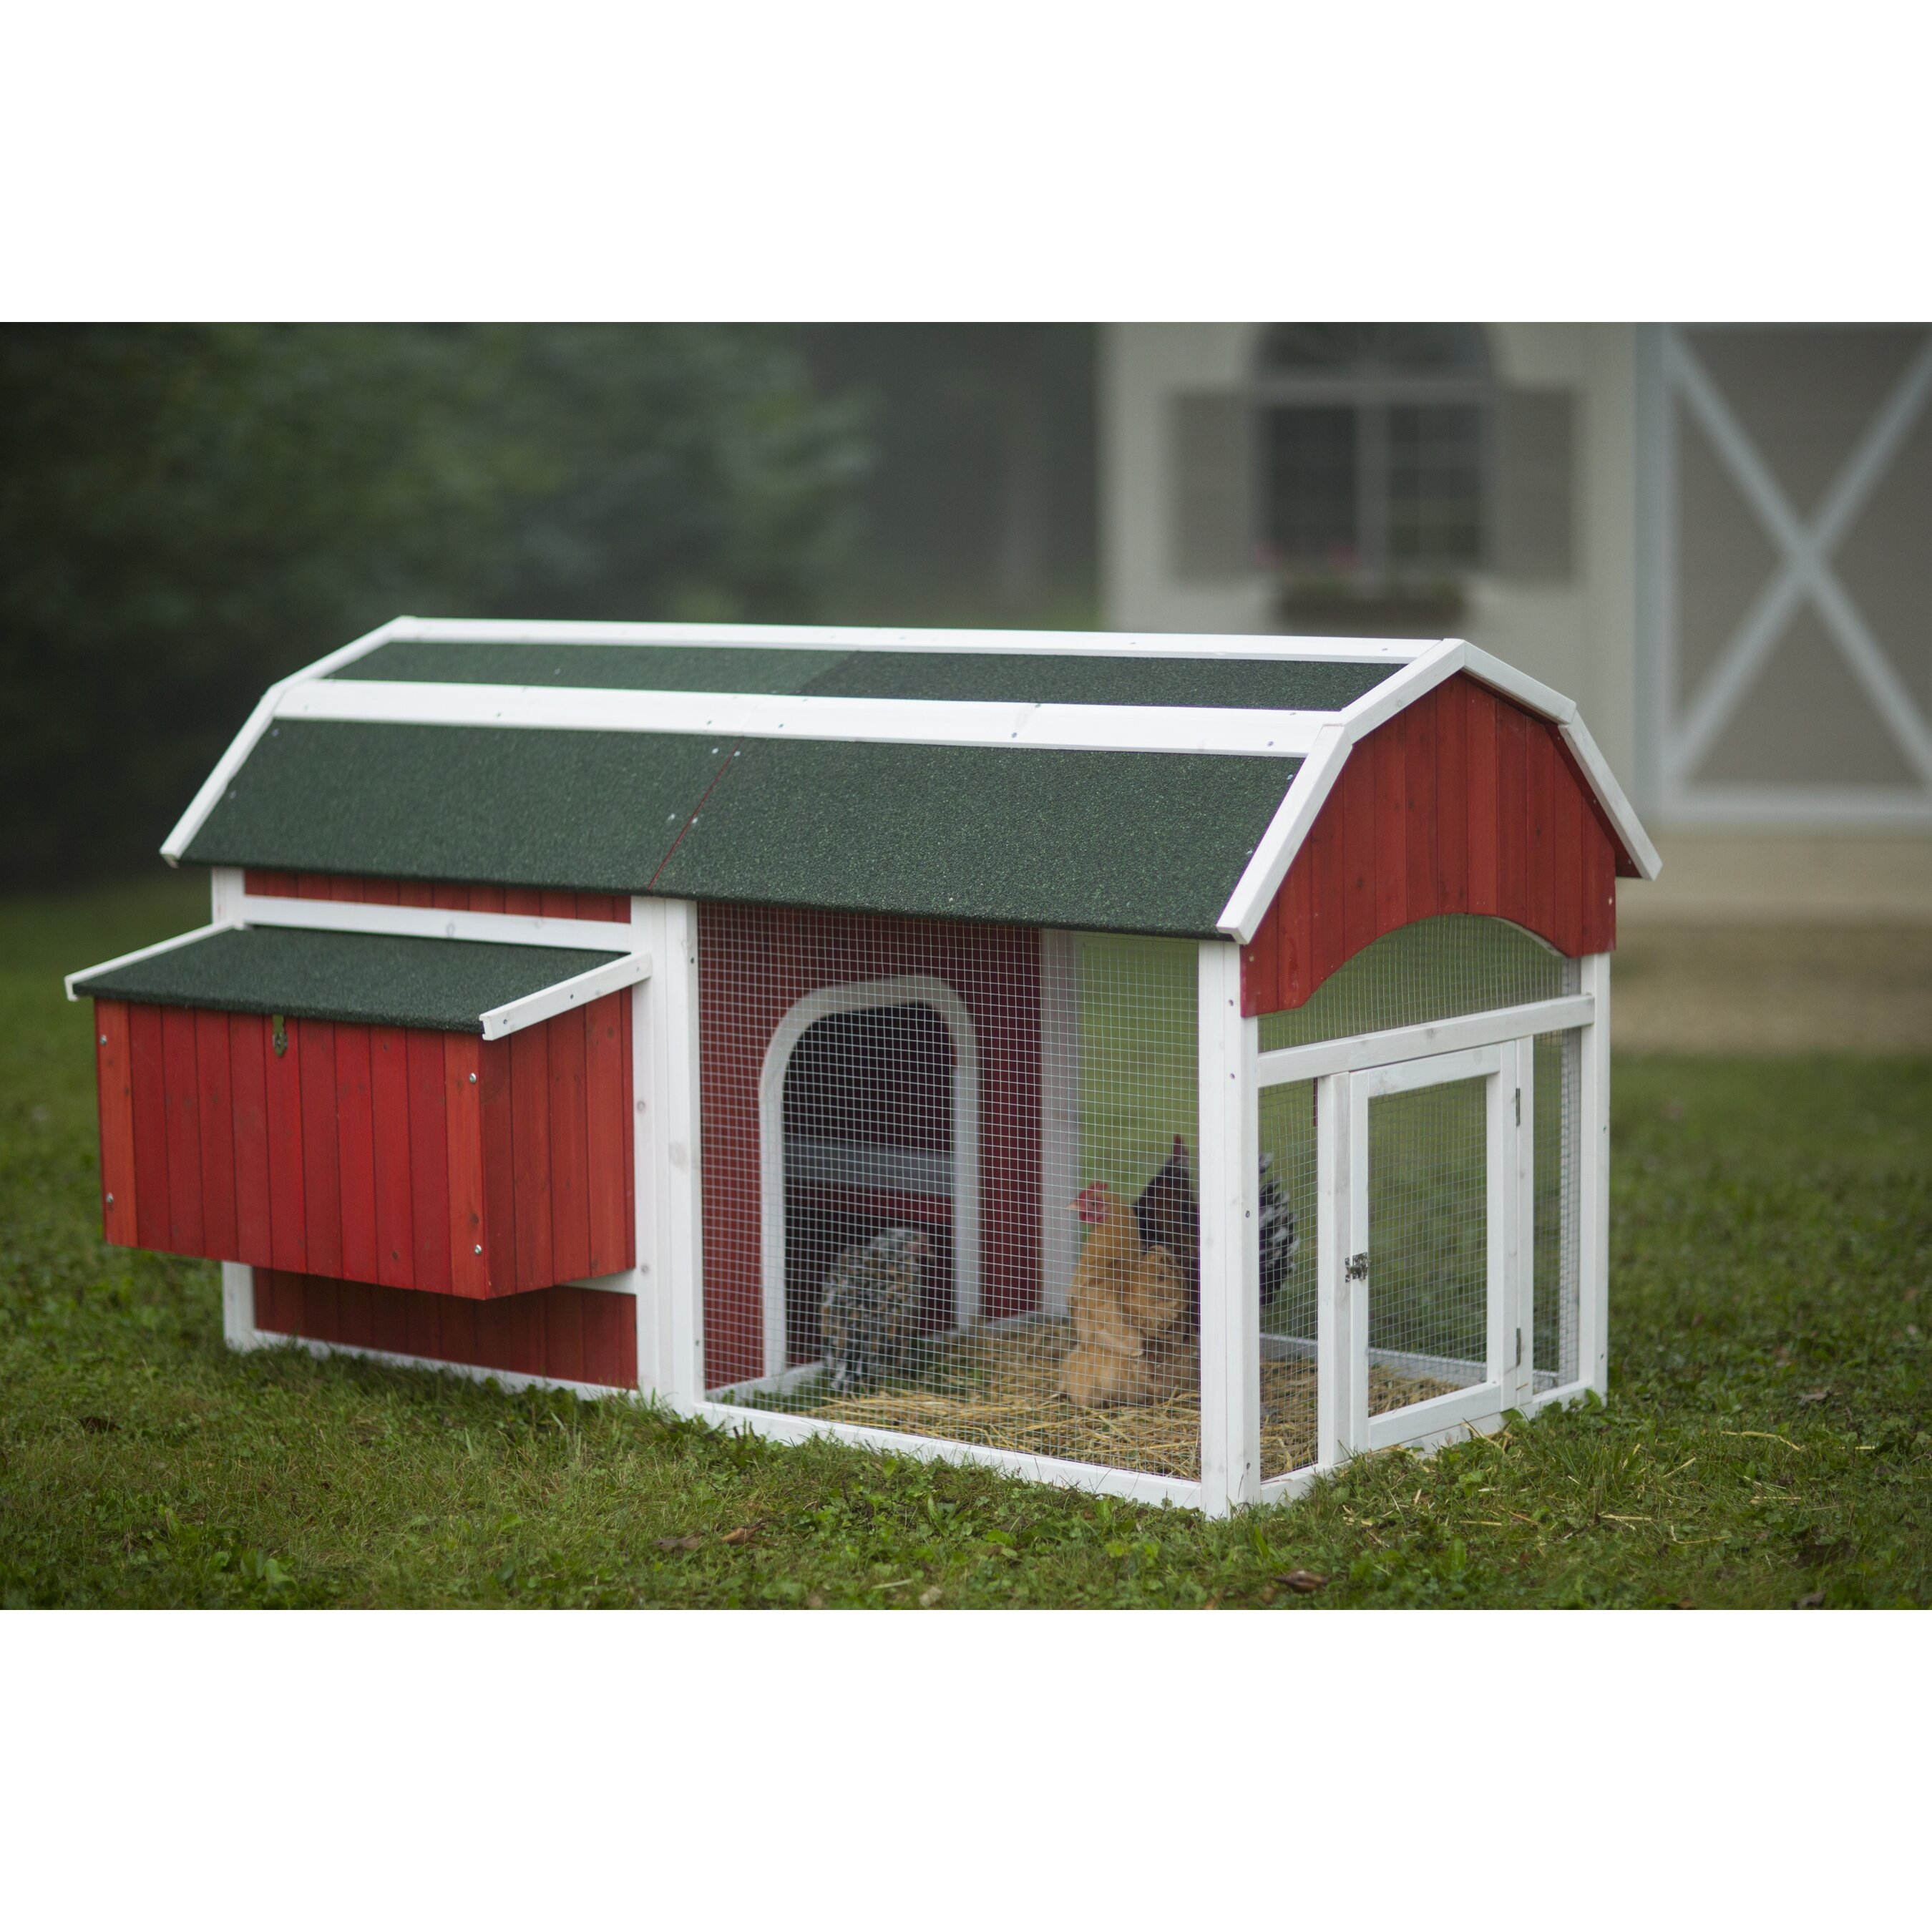 California King Size Bedroom Sets Prevue Hendryx Red Barn Small Chicken Coop Amp Reviews Wayfair